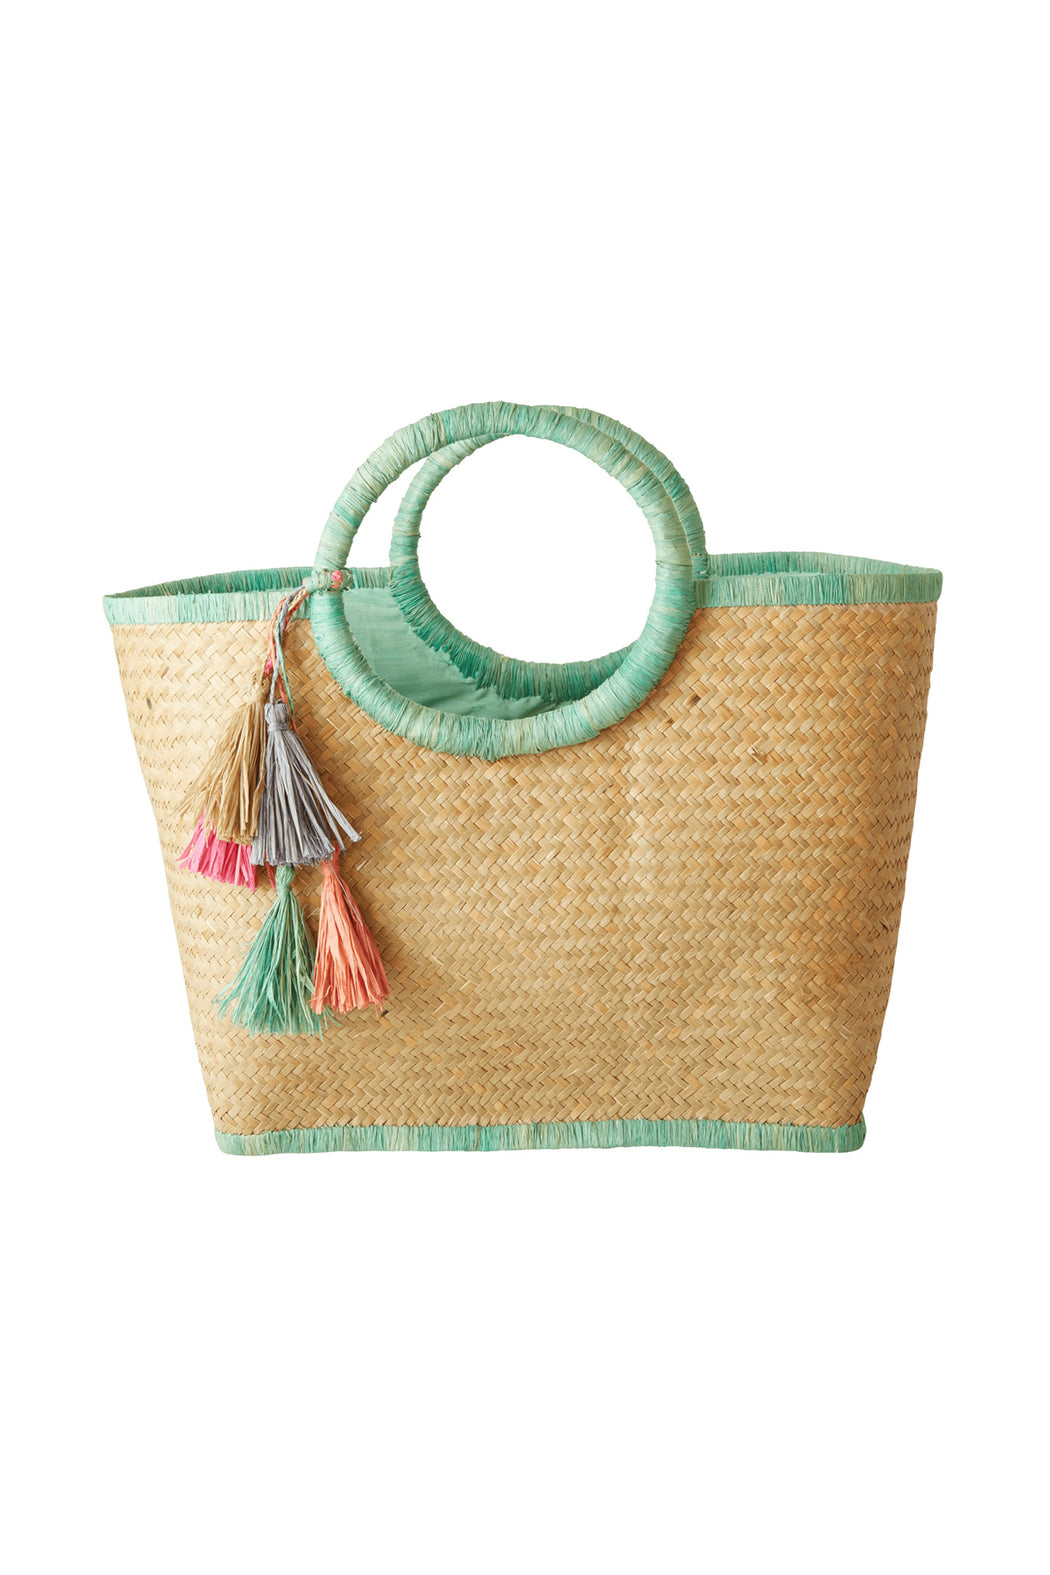 Raffia Bag with Pom Poms Sage Green